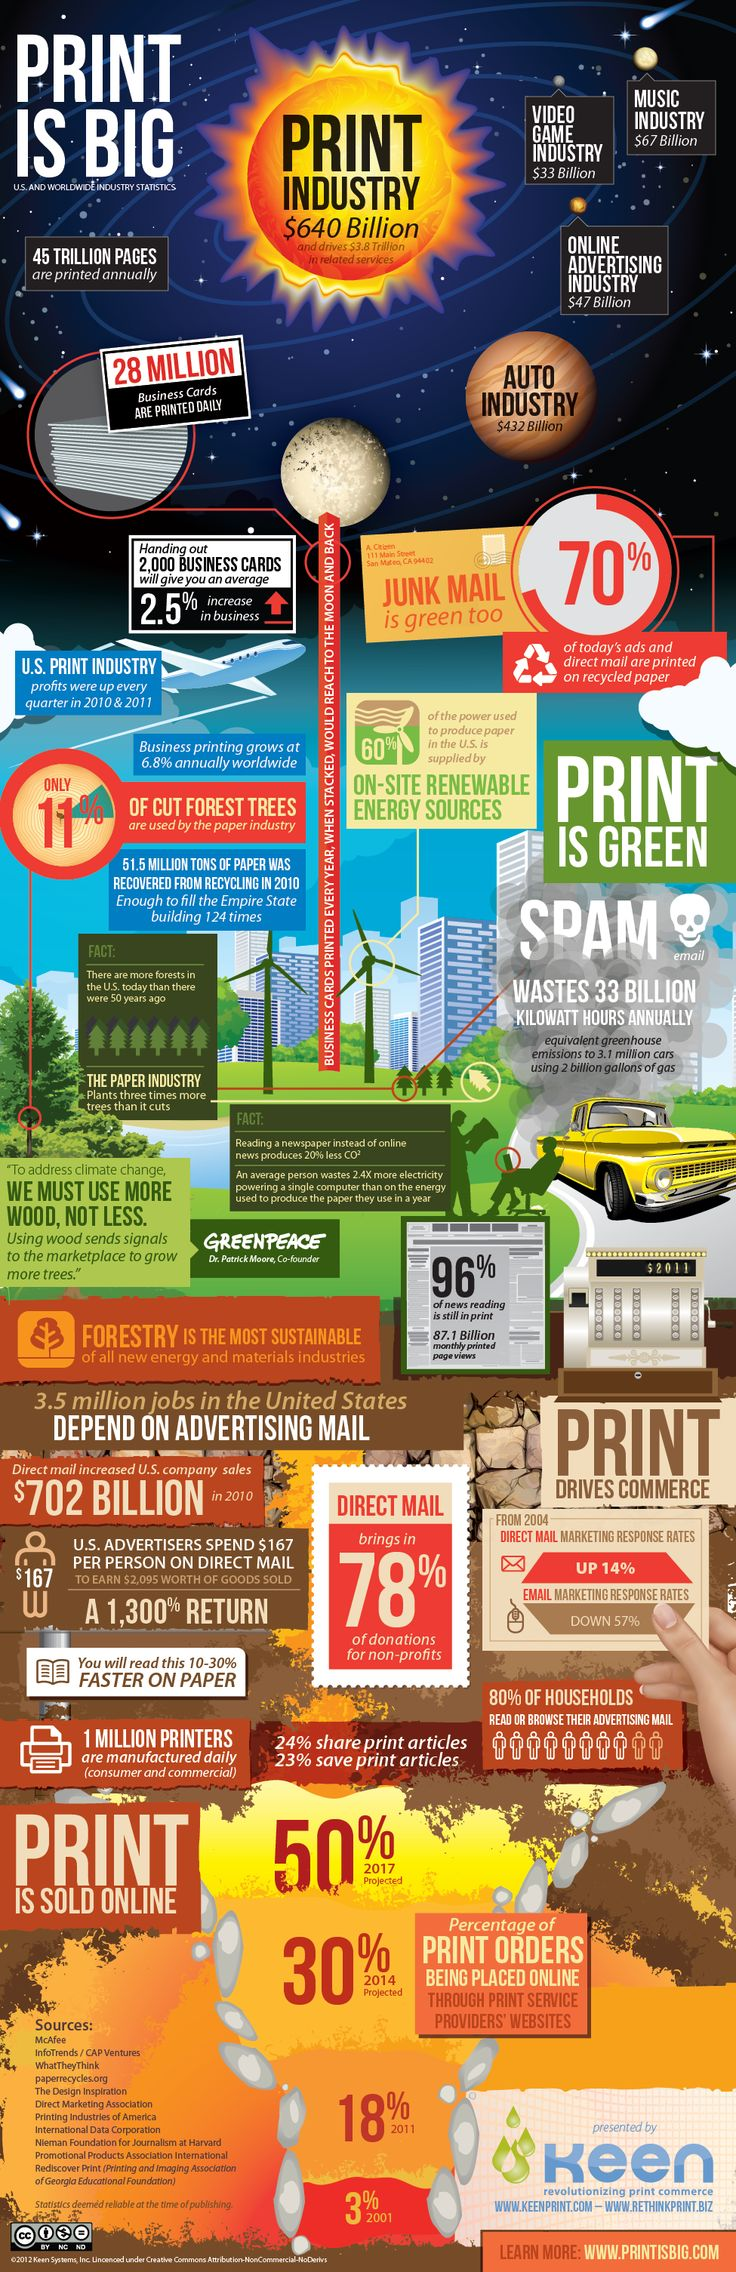 Print is big. Check out the interactive version of this infographic: http://printisbig.com/